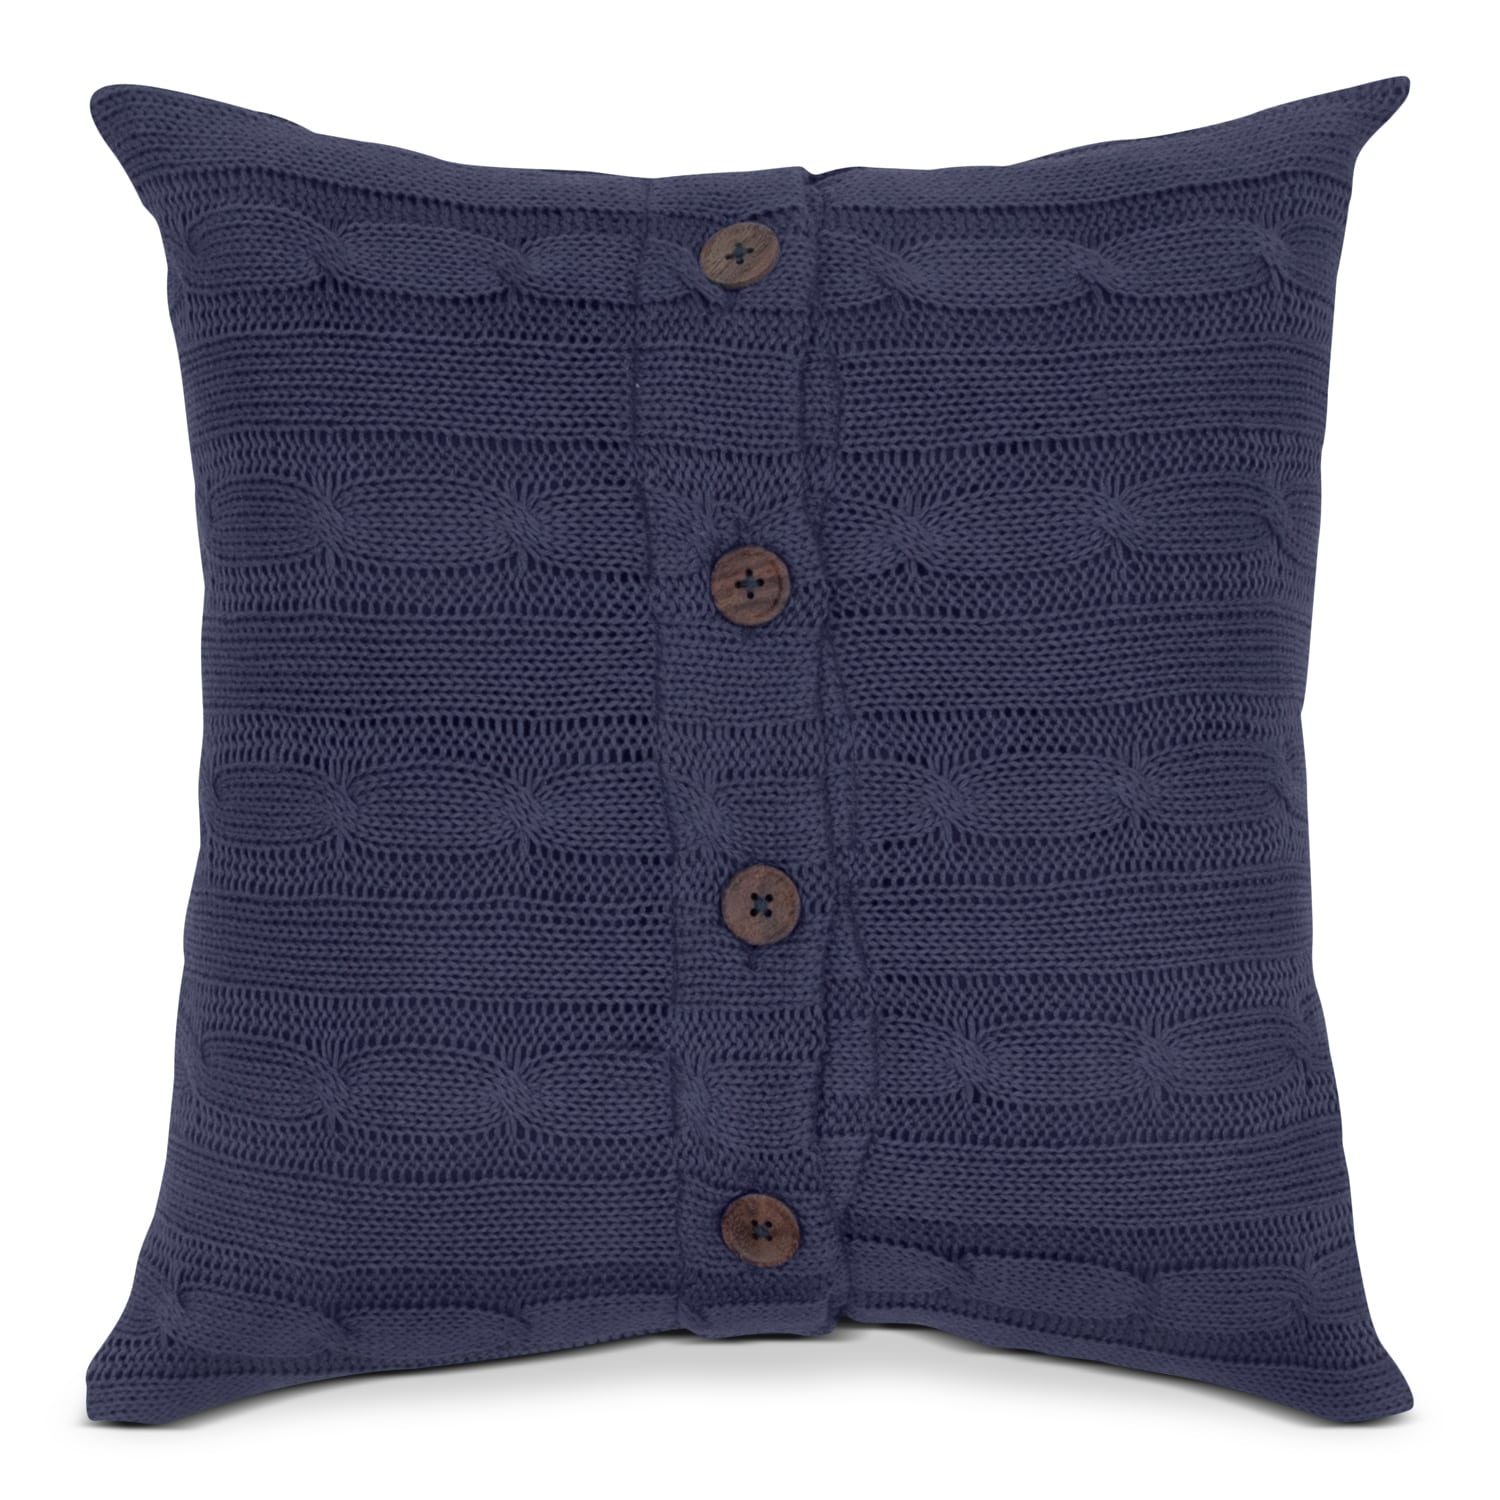 Cable Navy Decorative Pillow